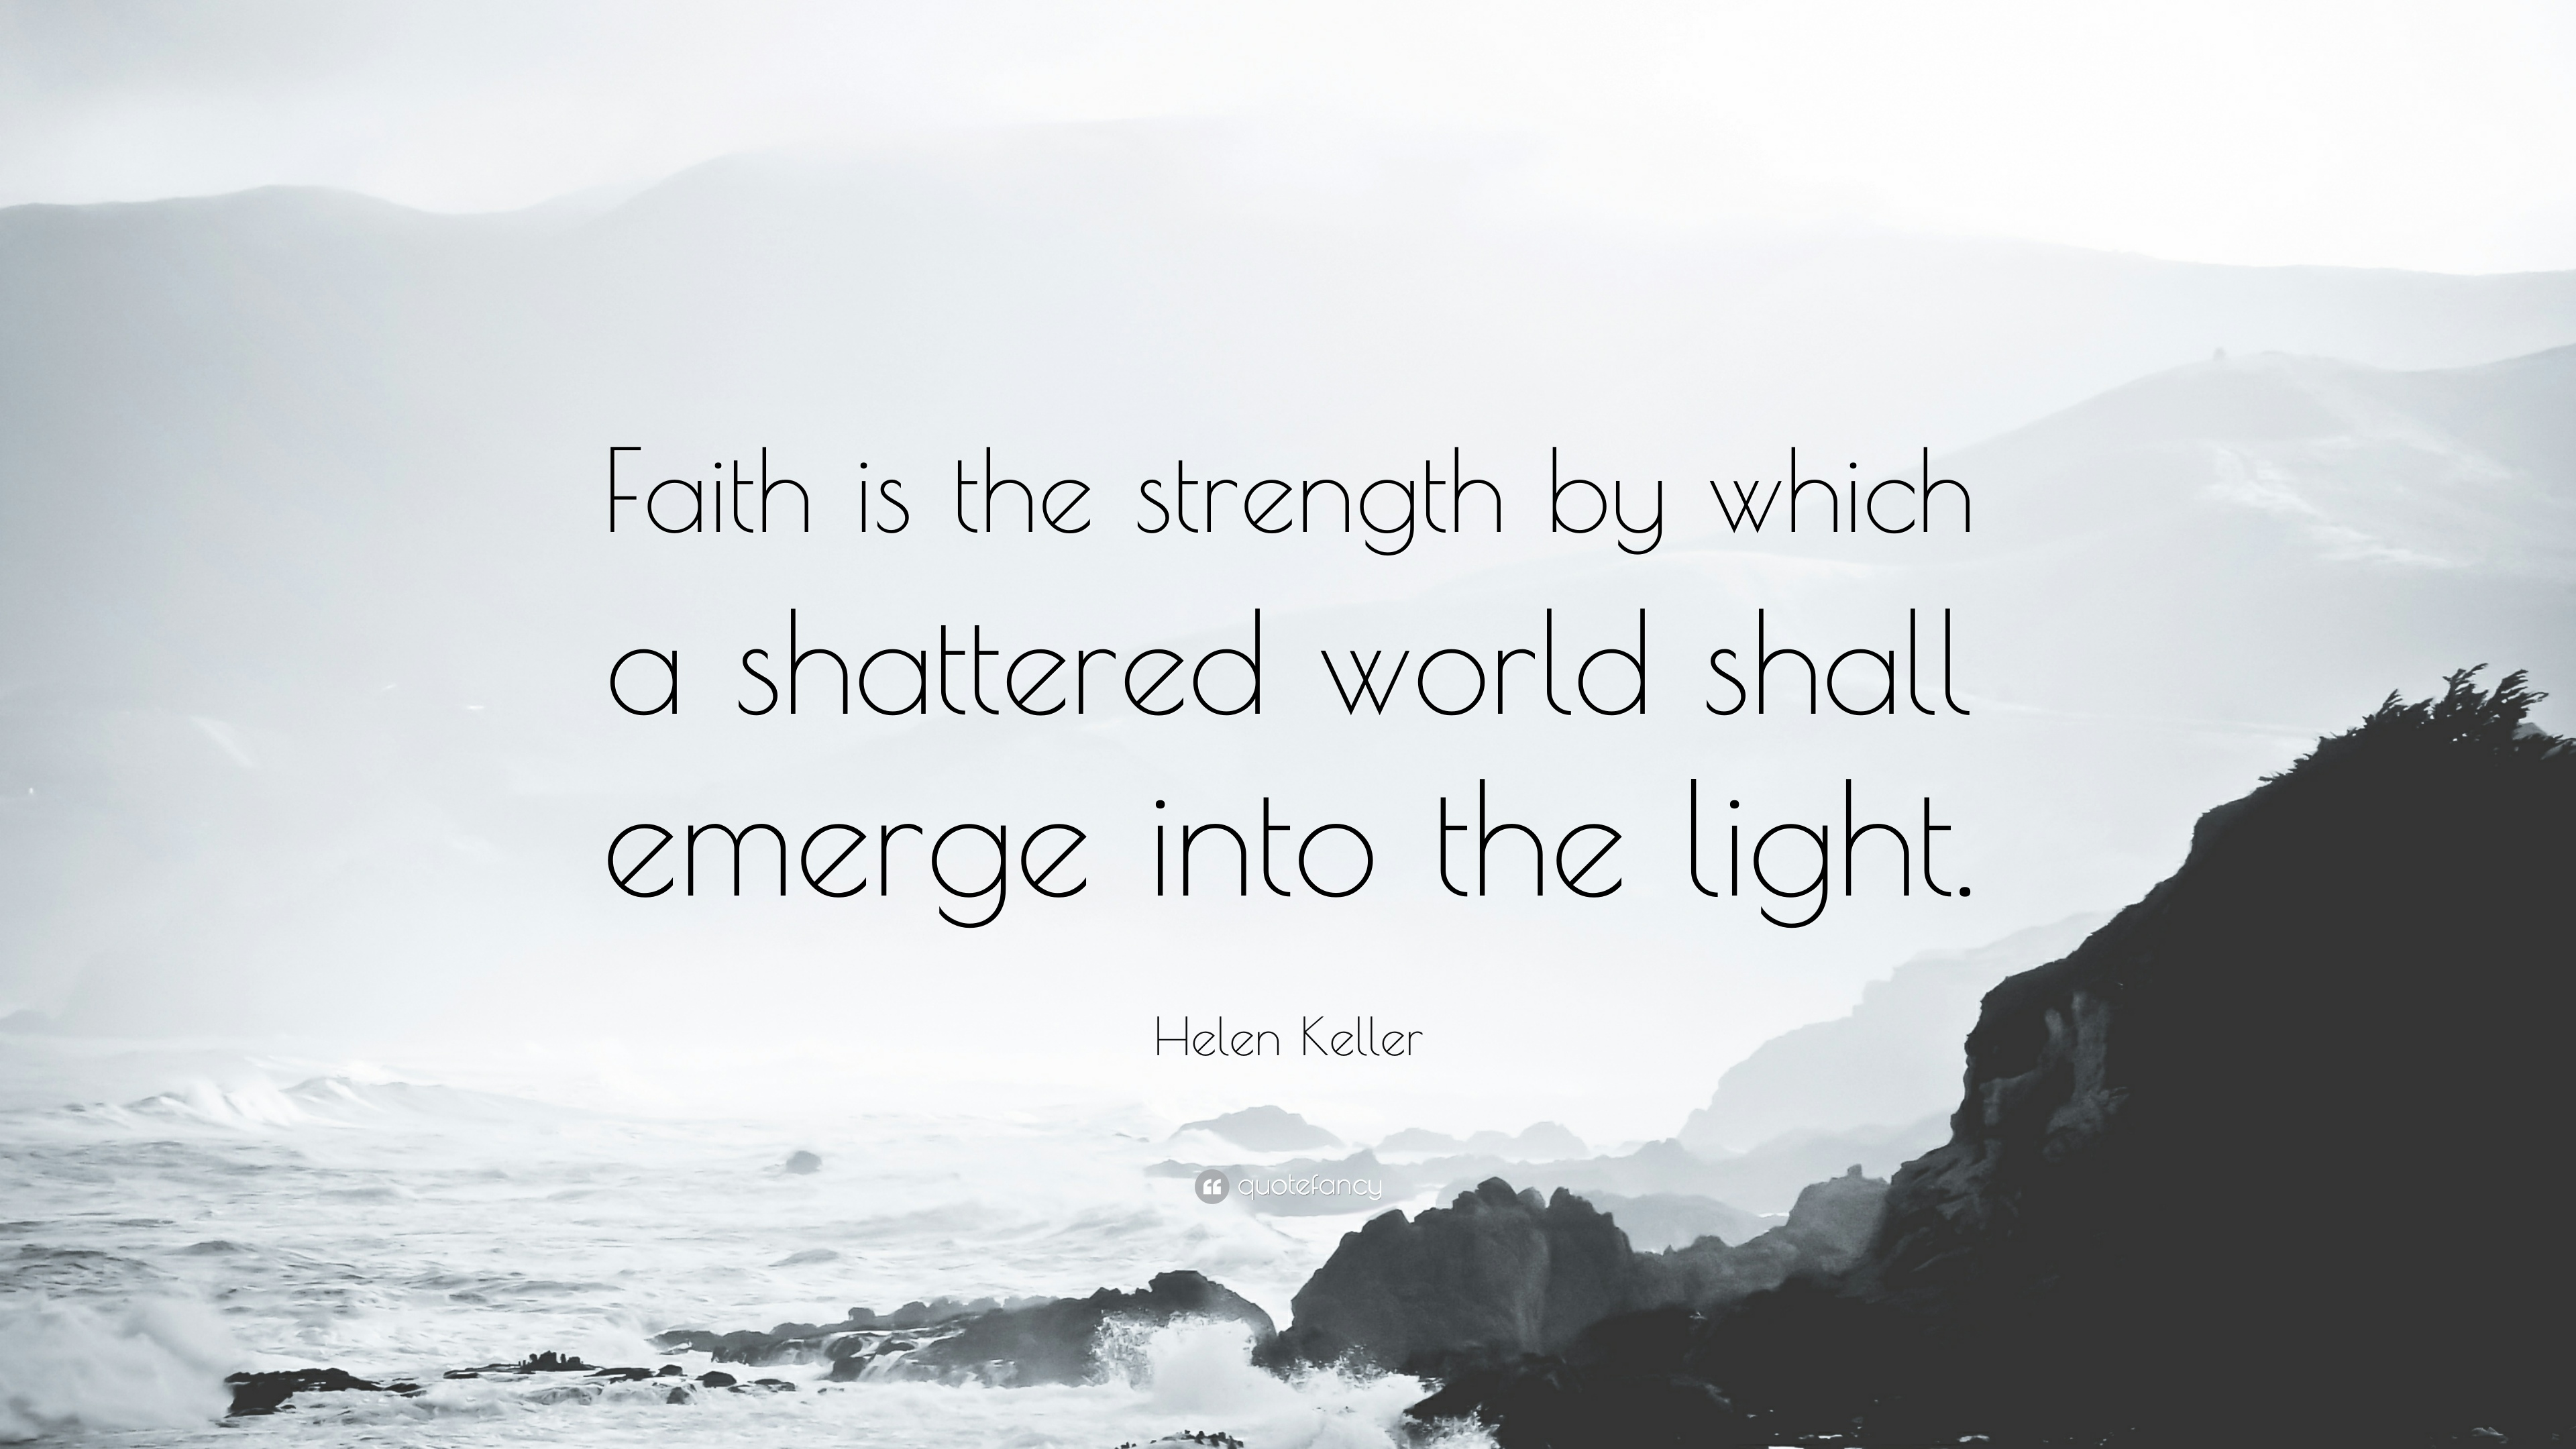 Quotes About Faith Faith Quotes 40 Wallpapers  Quotefancy